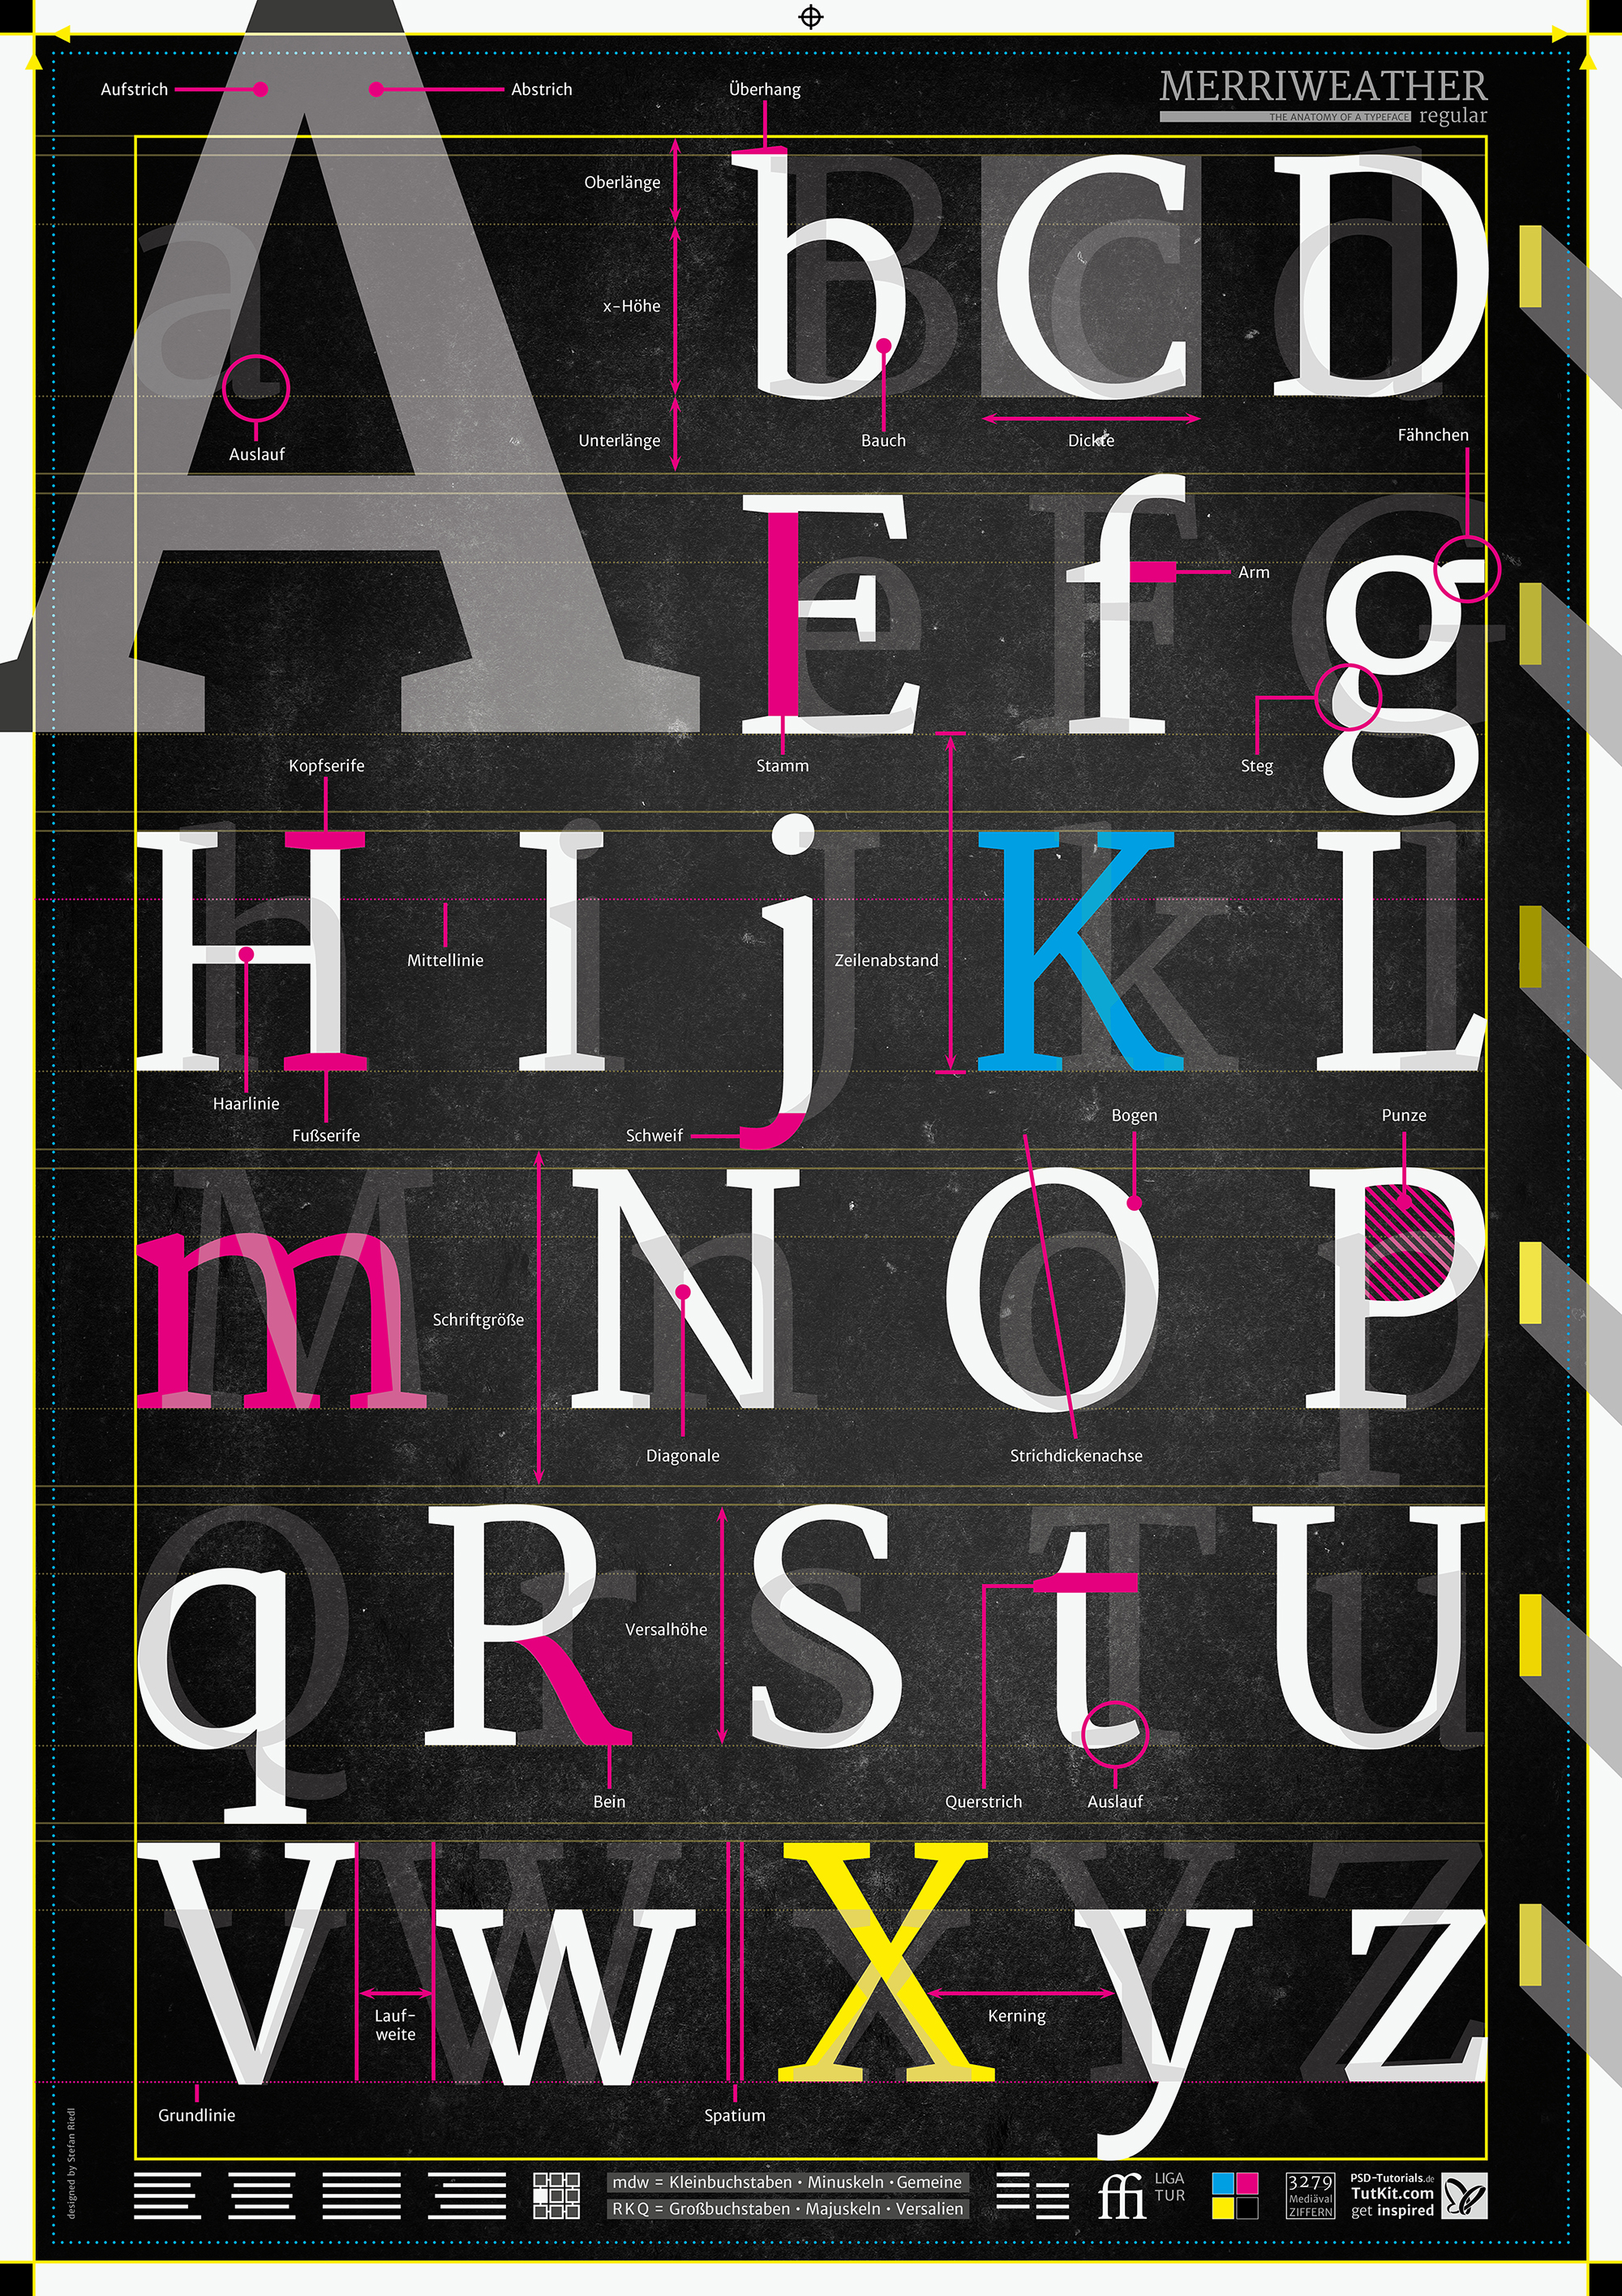 Stefan Riedl - The anatomy of a typeface